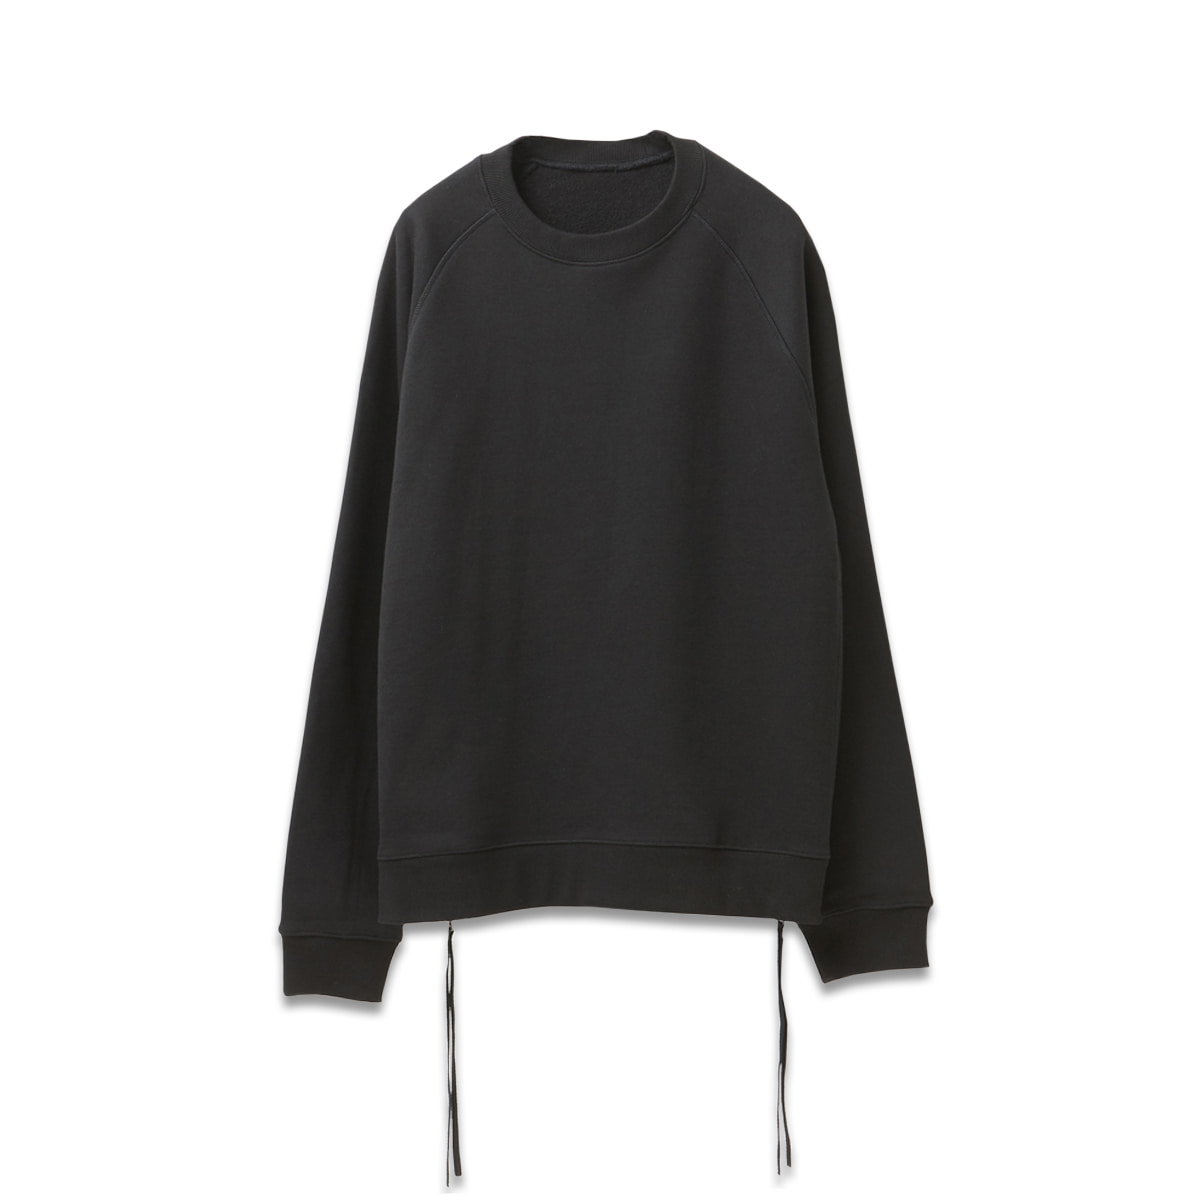 [YOUTH] SIDE ZIP-UP SWEATSHIRT 'BLACK'